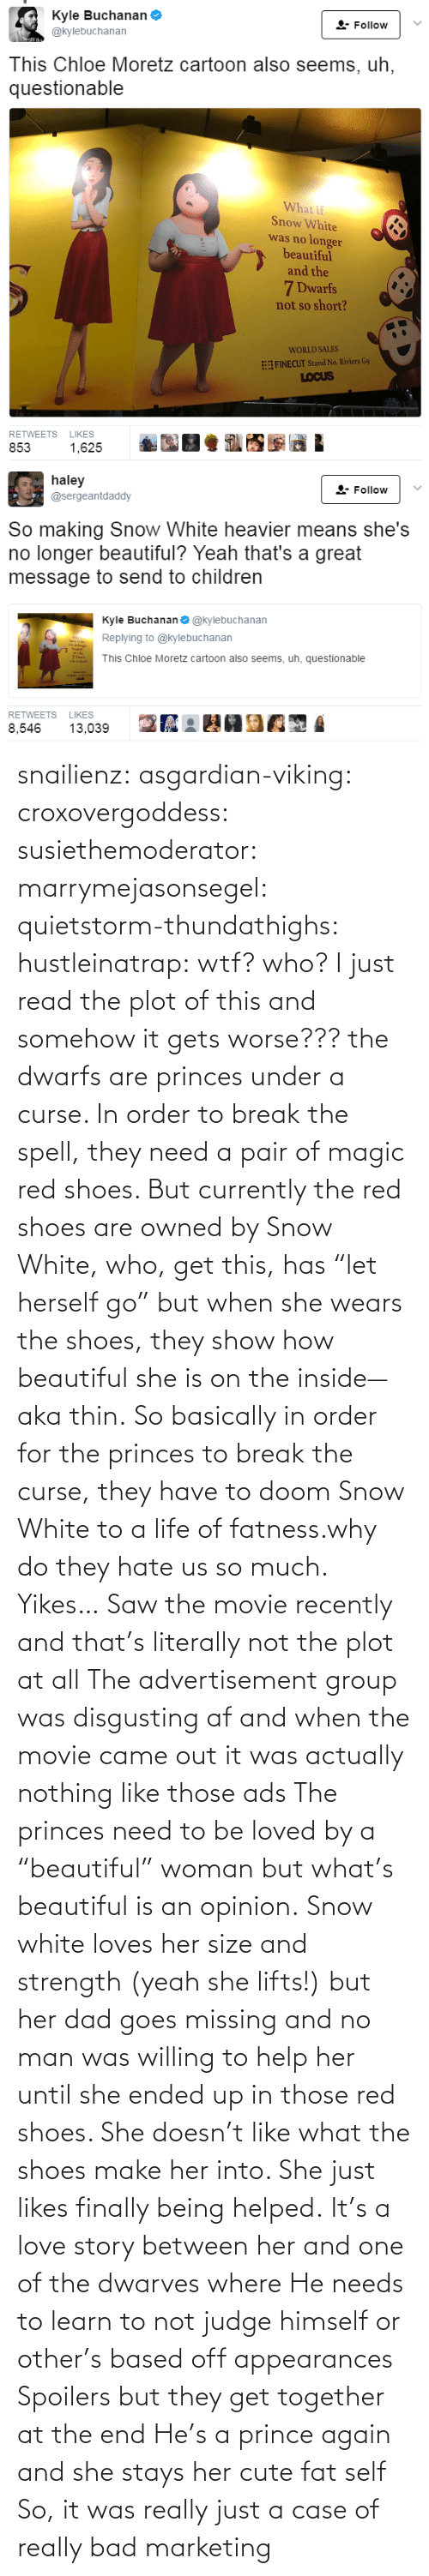 "Like What: snailienz: asgardian-viking:  croxovergoddess:  susiethemoderator:  marrymejasonsegel:   quietstorm-thundathighs:  hustleinatrap: wtf?  who?   I just read the plot of this and somehow it gets worse??? the dwarfs are princes under a curse. In order to break the spell, they need a pair of magic red shoes. But currently the red shoes are owned by Snow White, who, get this, has ""let herself go"" but when she wears the shoes, they show how beautiful she is on the inside—aka thin. So basically in order for the princes to break the curse, they have to doom Snow White to a life of fatness.why do they hate us so much.   Yikes…    Saw the movie recently and that's literally not the plot at all The advertisement group was disgusting af and when the movie came out it was actually nothing like those ads The princes need to be loved by a ""beautiful"" woman but what's beautiful is an opinion. Snow white loves her size and strength (yeah she lifts!) but her dad goes missing and no man was willing to help her until she ended up in those red shoes. She doesn't like what the shoes make her into. She just likes finally being helped. It's a love story between her and one of the dwarves where He needs to learn to not judge himself or other's based off appearances  Spoilers but they get together at the end He's a prince again and she stays her cute fat self  So, it was really just a case of really bad marketing"